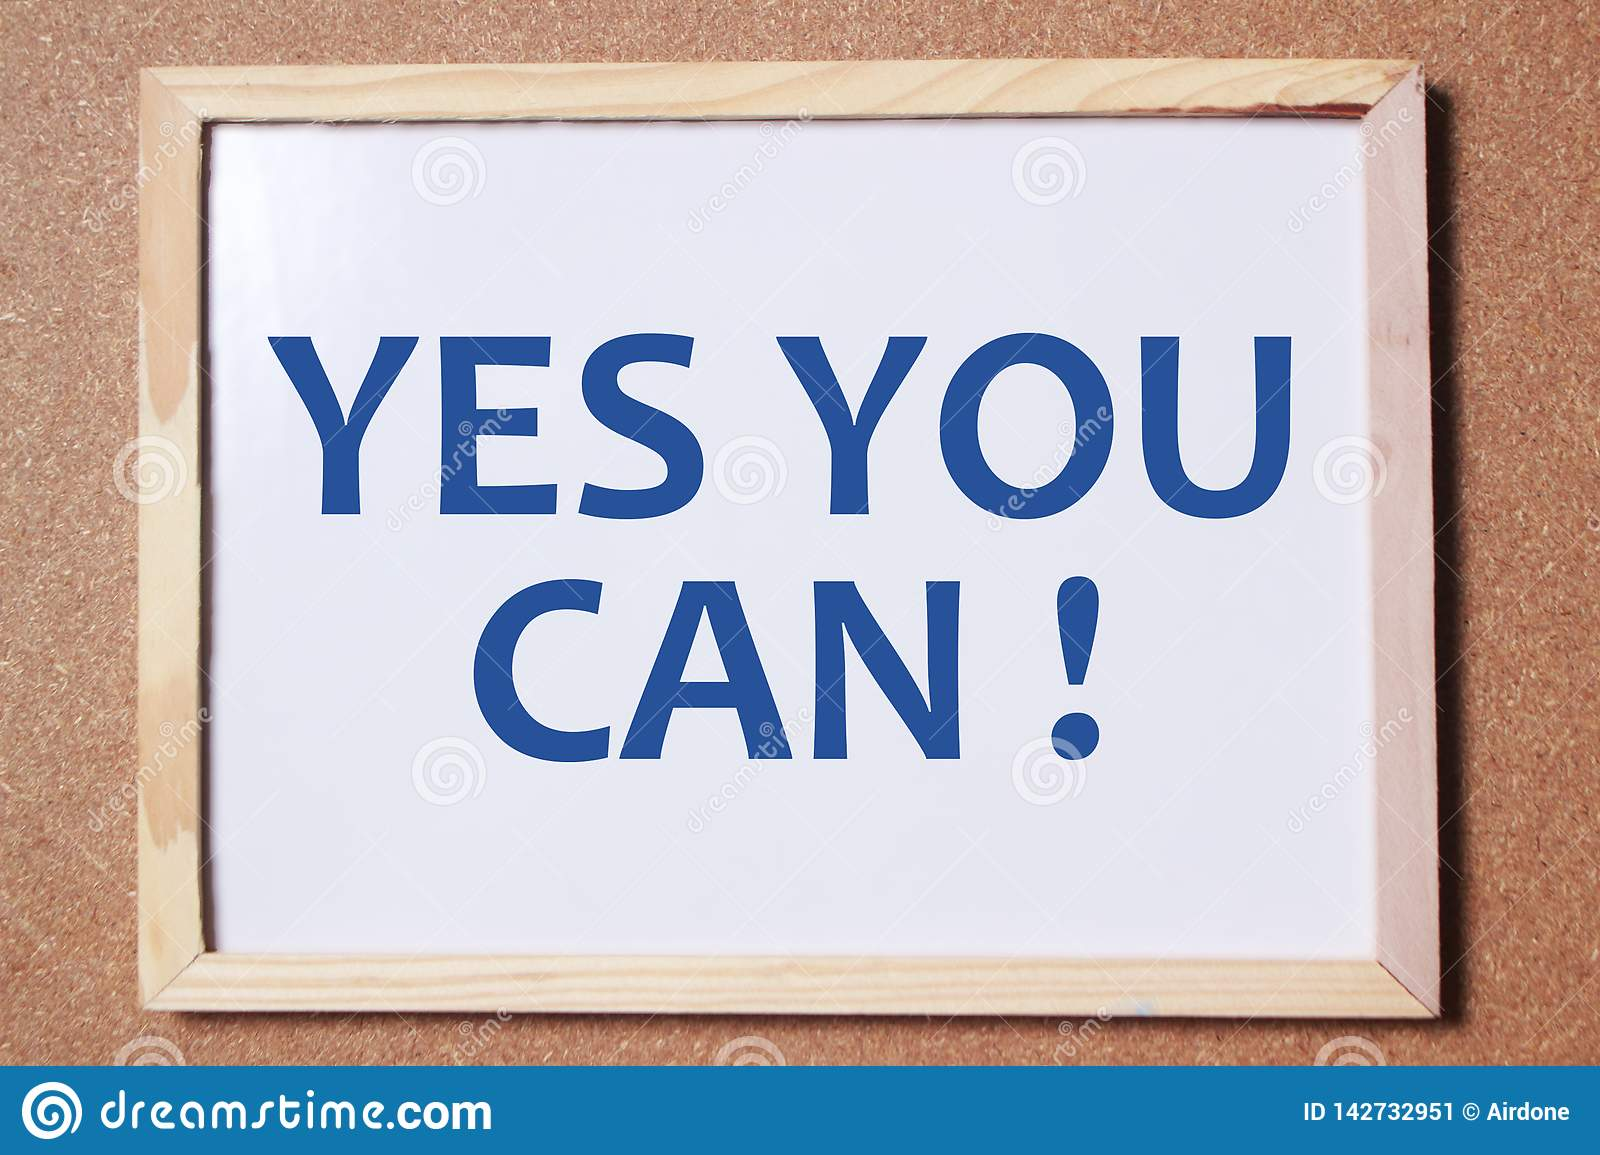 Yes You Can Motivational Words Quotes Concept Stock Image Image Of Symbol Attitude 142732951